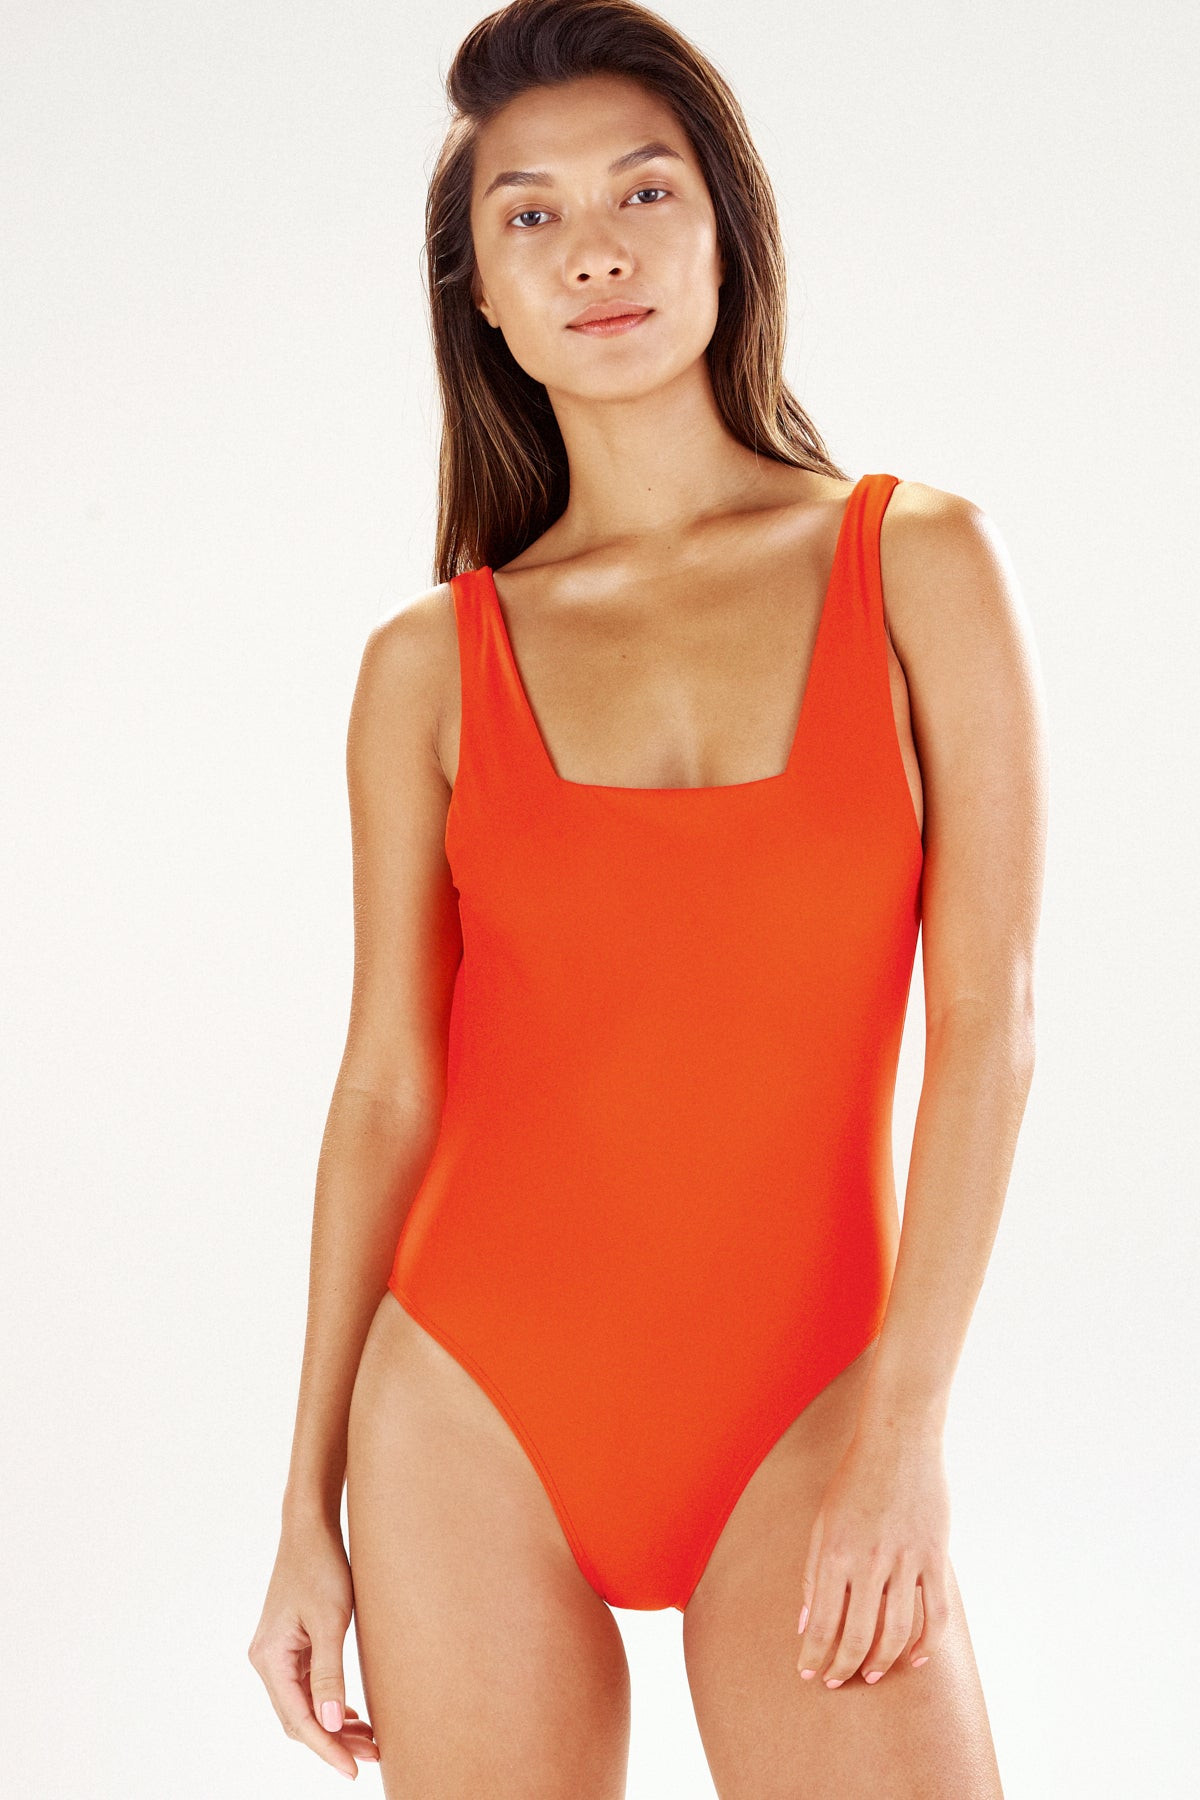 Girl in tangerine one-piece swimsuit, the Lisbon, by Ookioh